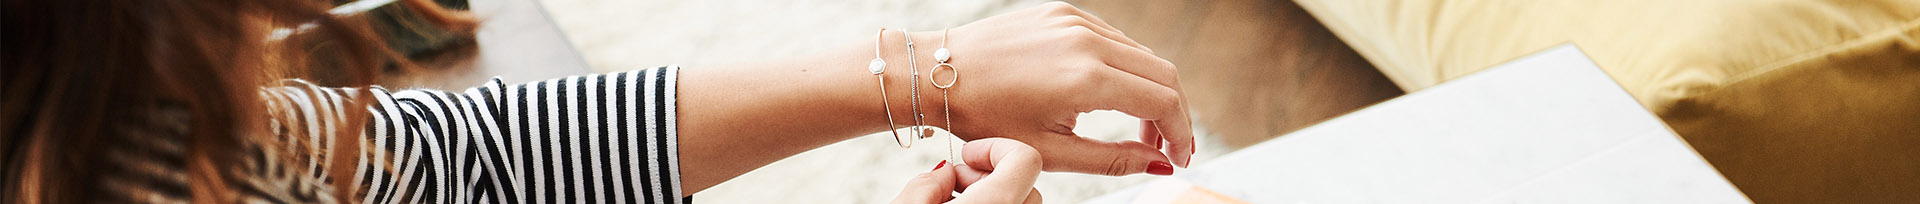 cluse-jewellery-category-banner1.jpg